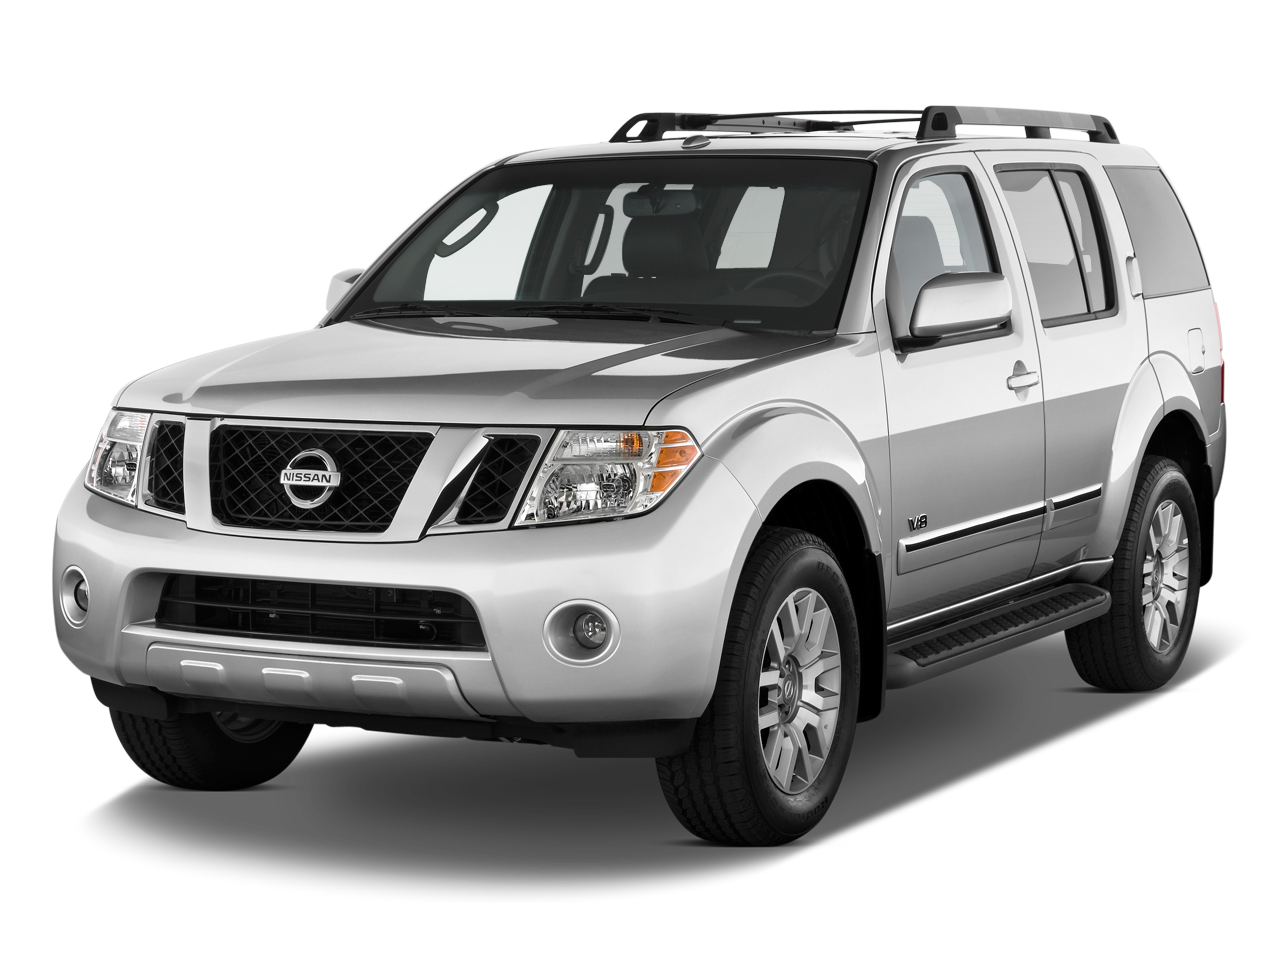 2009 nissan pathfinder le 4x4 nissan midsize suv review 150 vanachro Image collections